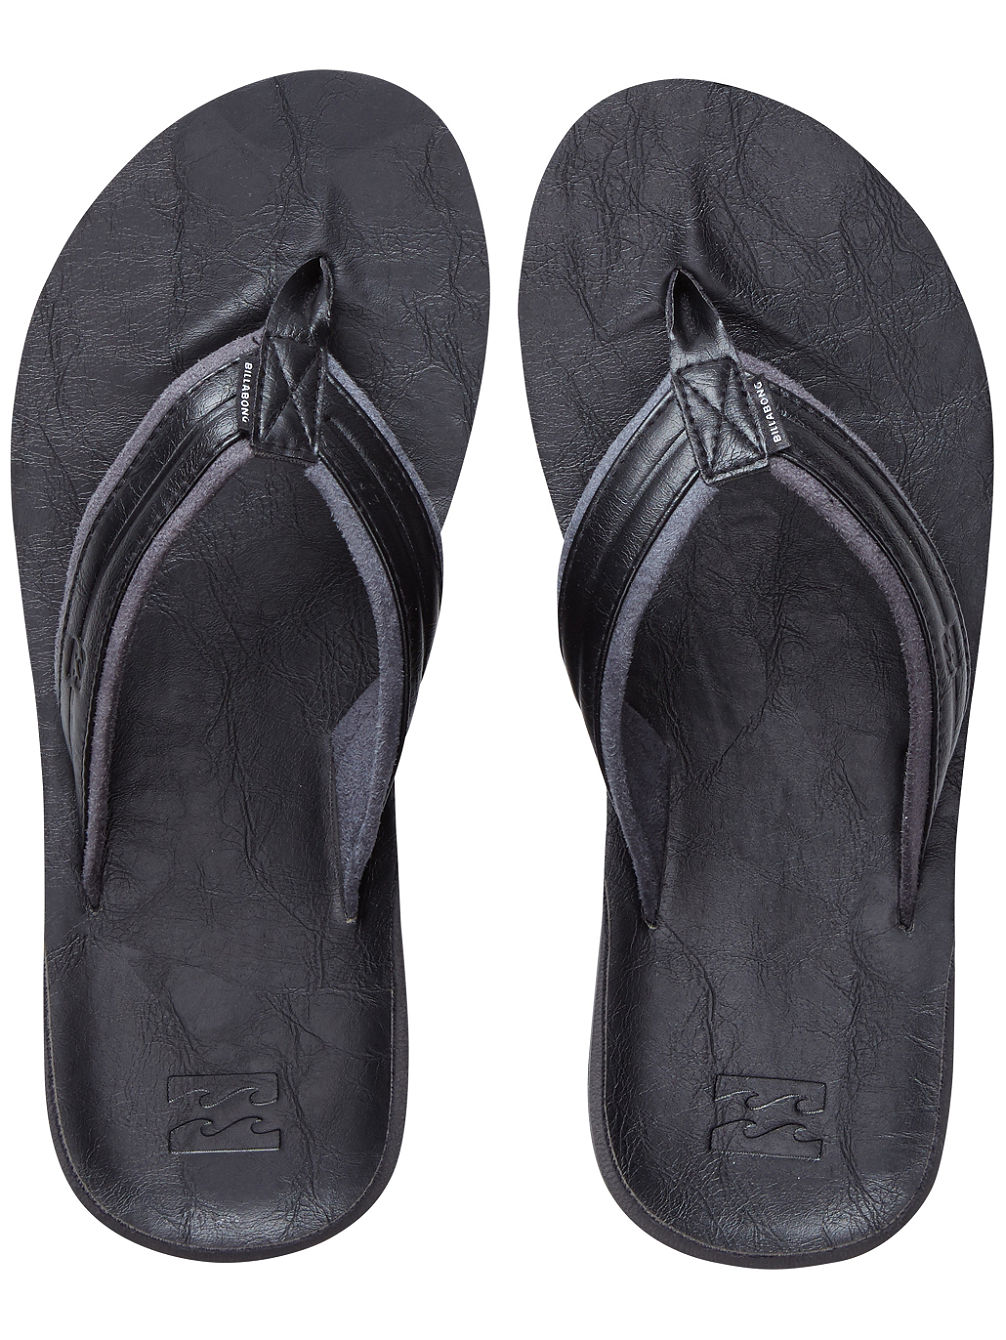 Caldwell Sandals